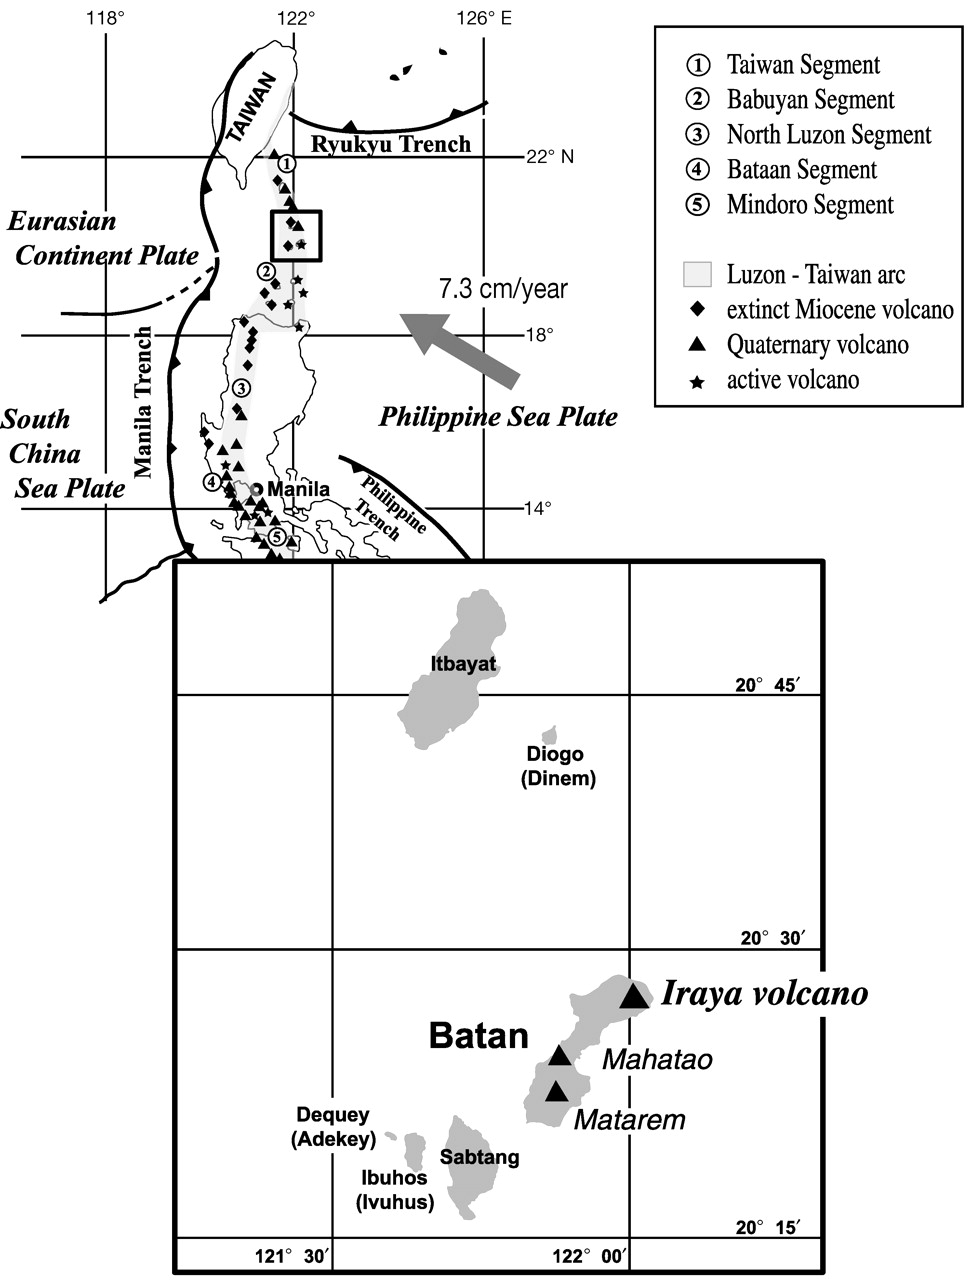 Tectonic setting of Iraya volcano and the segments of the Luzon volcanic arc (Philippines). From: Arai et al (2004)